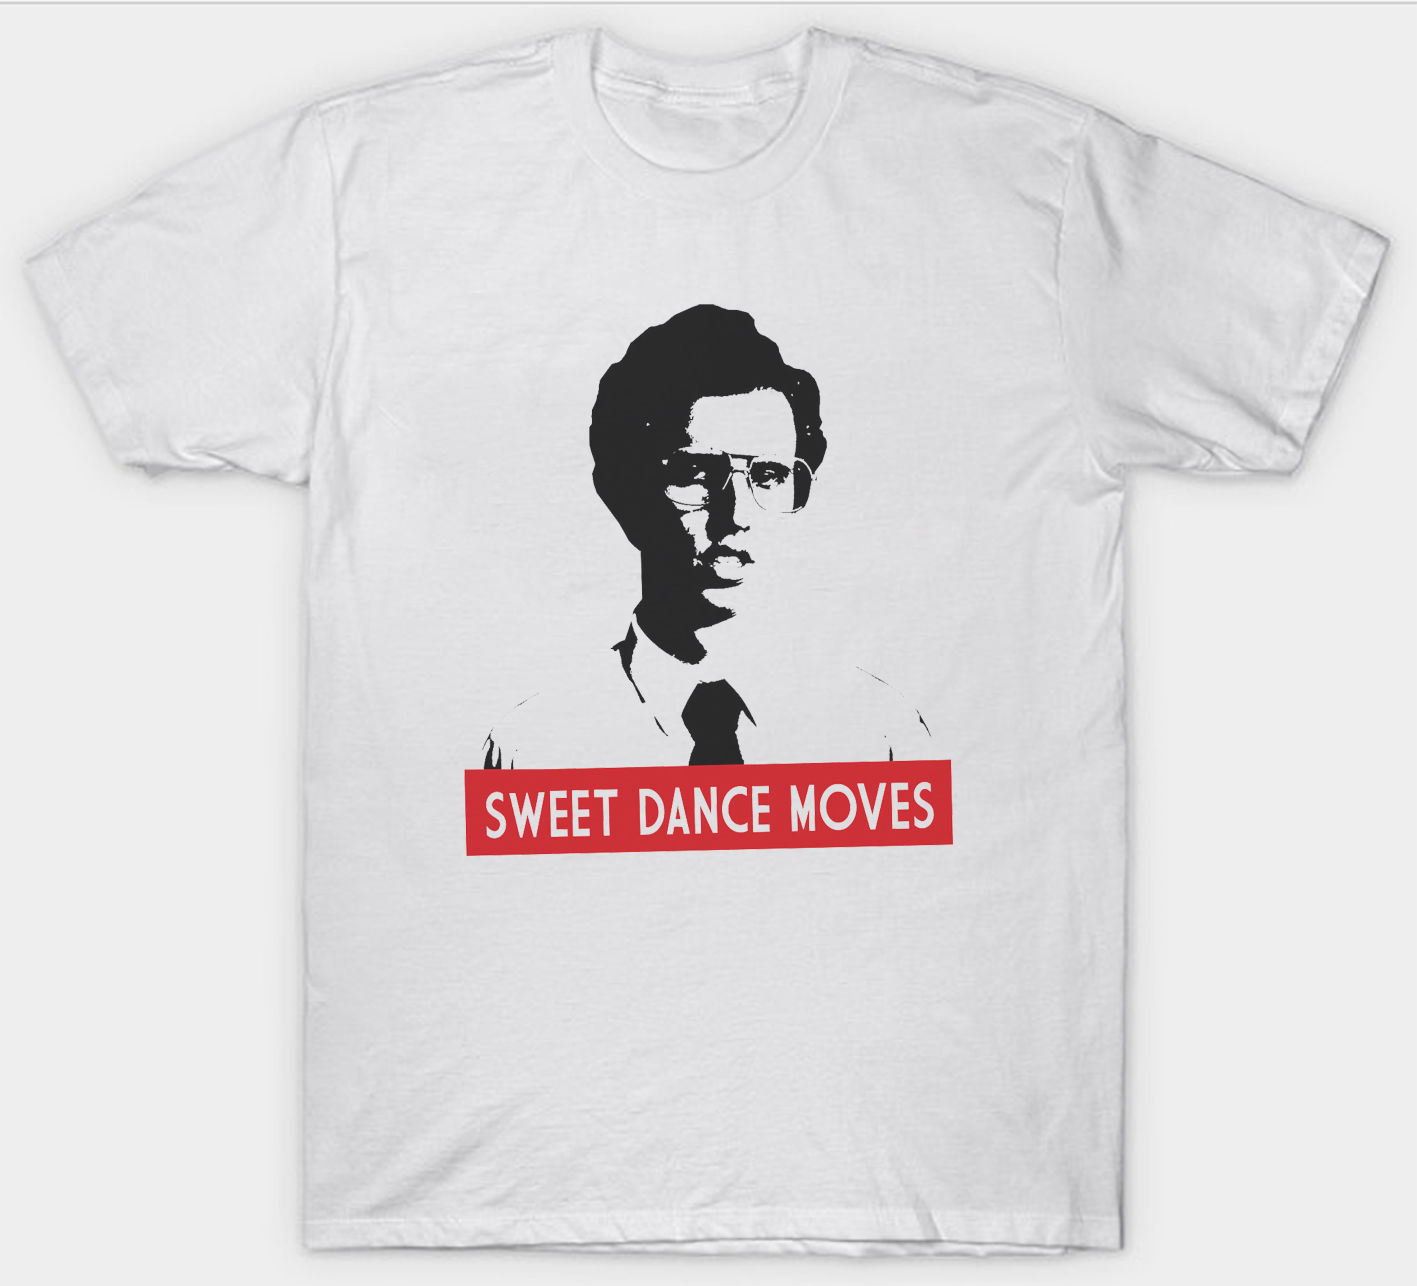 NAPOLEON DYNAMITE T SHIRT SWEET DANCE MOVES FILM MOVIE FUNNY COMEDY